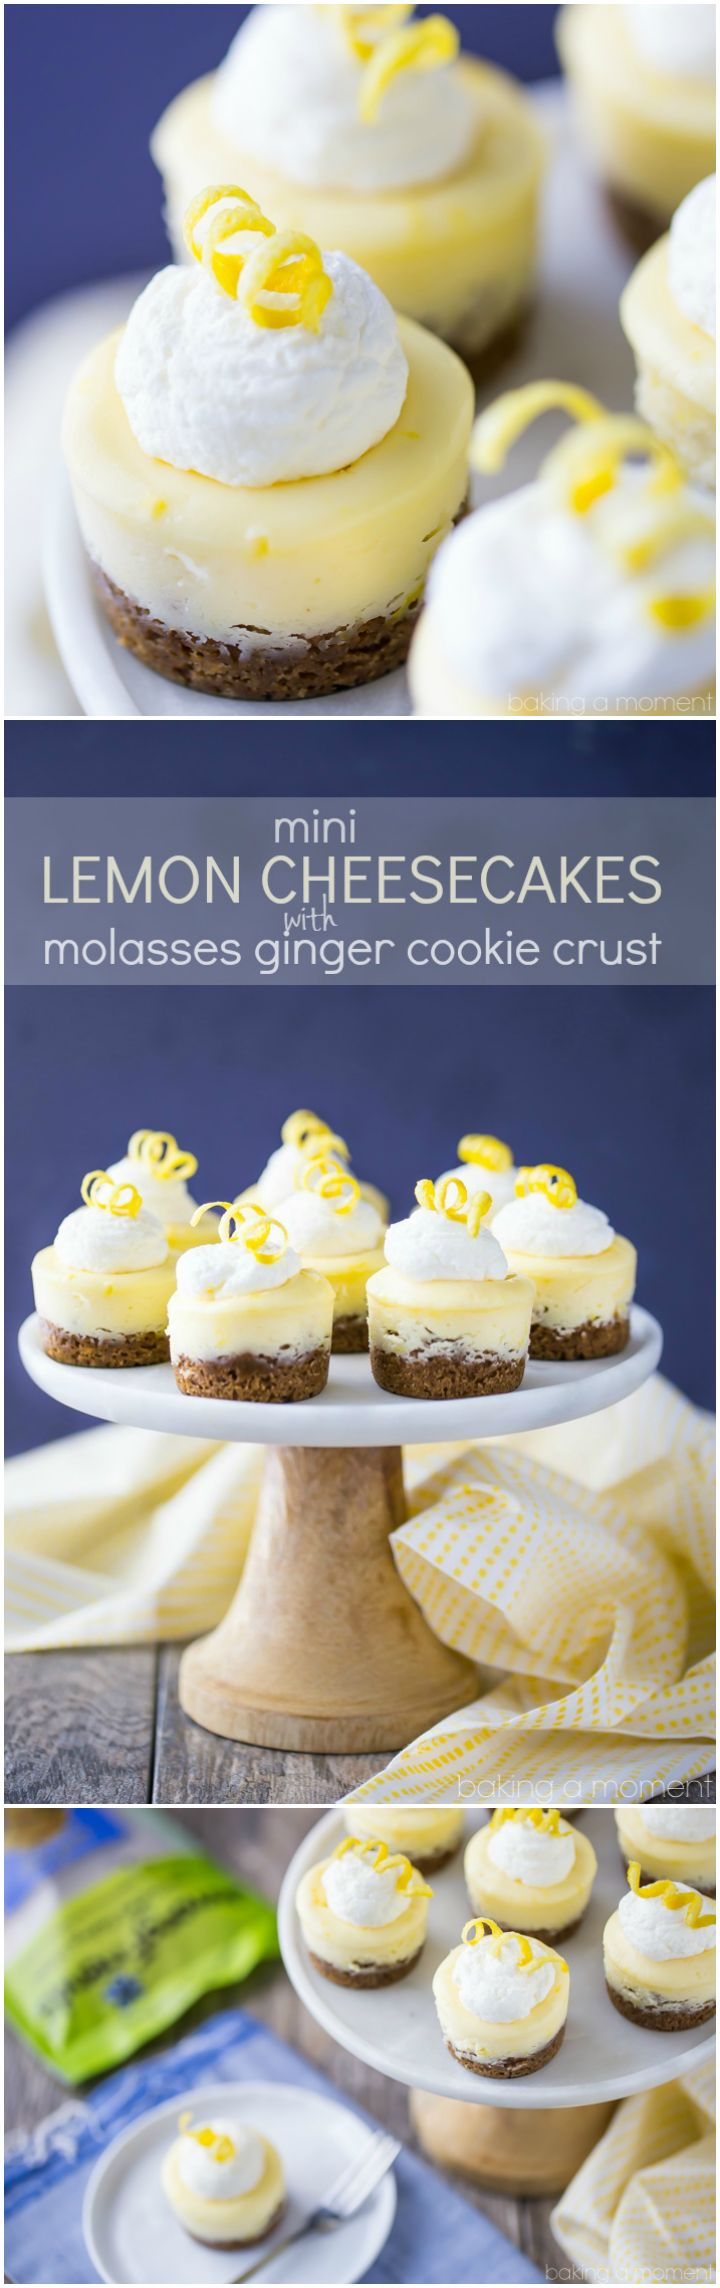 So cute for a party! These creamy Mini Lemon Cheesecakes are a perfect compliment to their soft & chewy ginger molasses cookie crust. @AFBakingMixes #spon